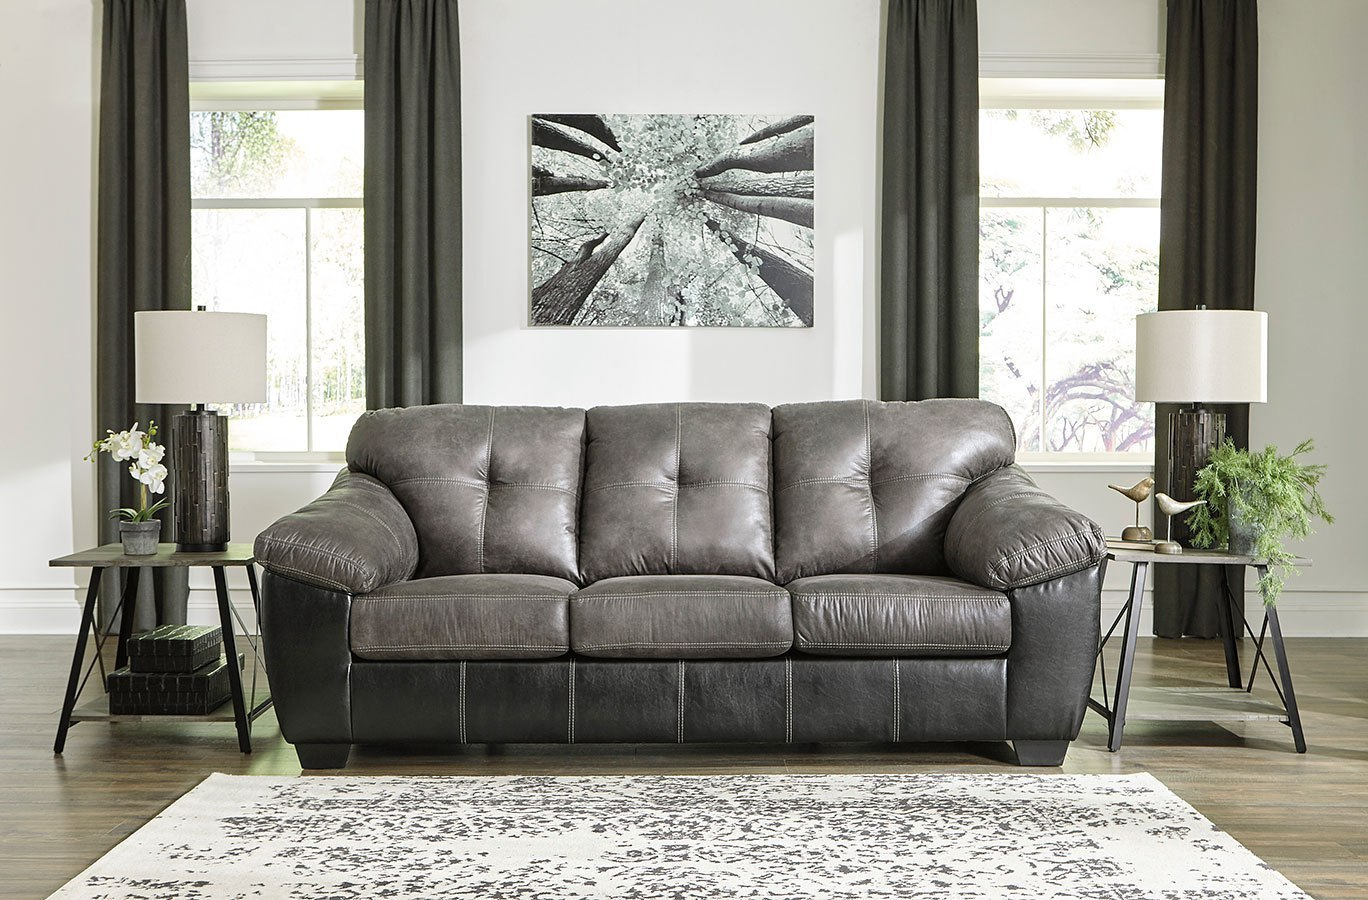 Groovy Gregale Slate Sofa Pdpeps Interior Chair Design Pdpepsorg